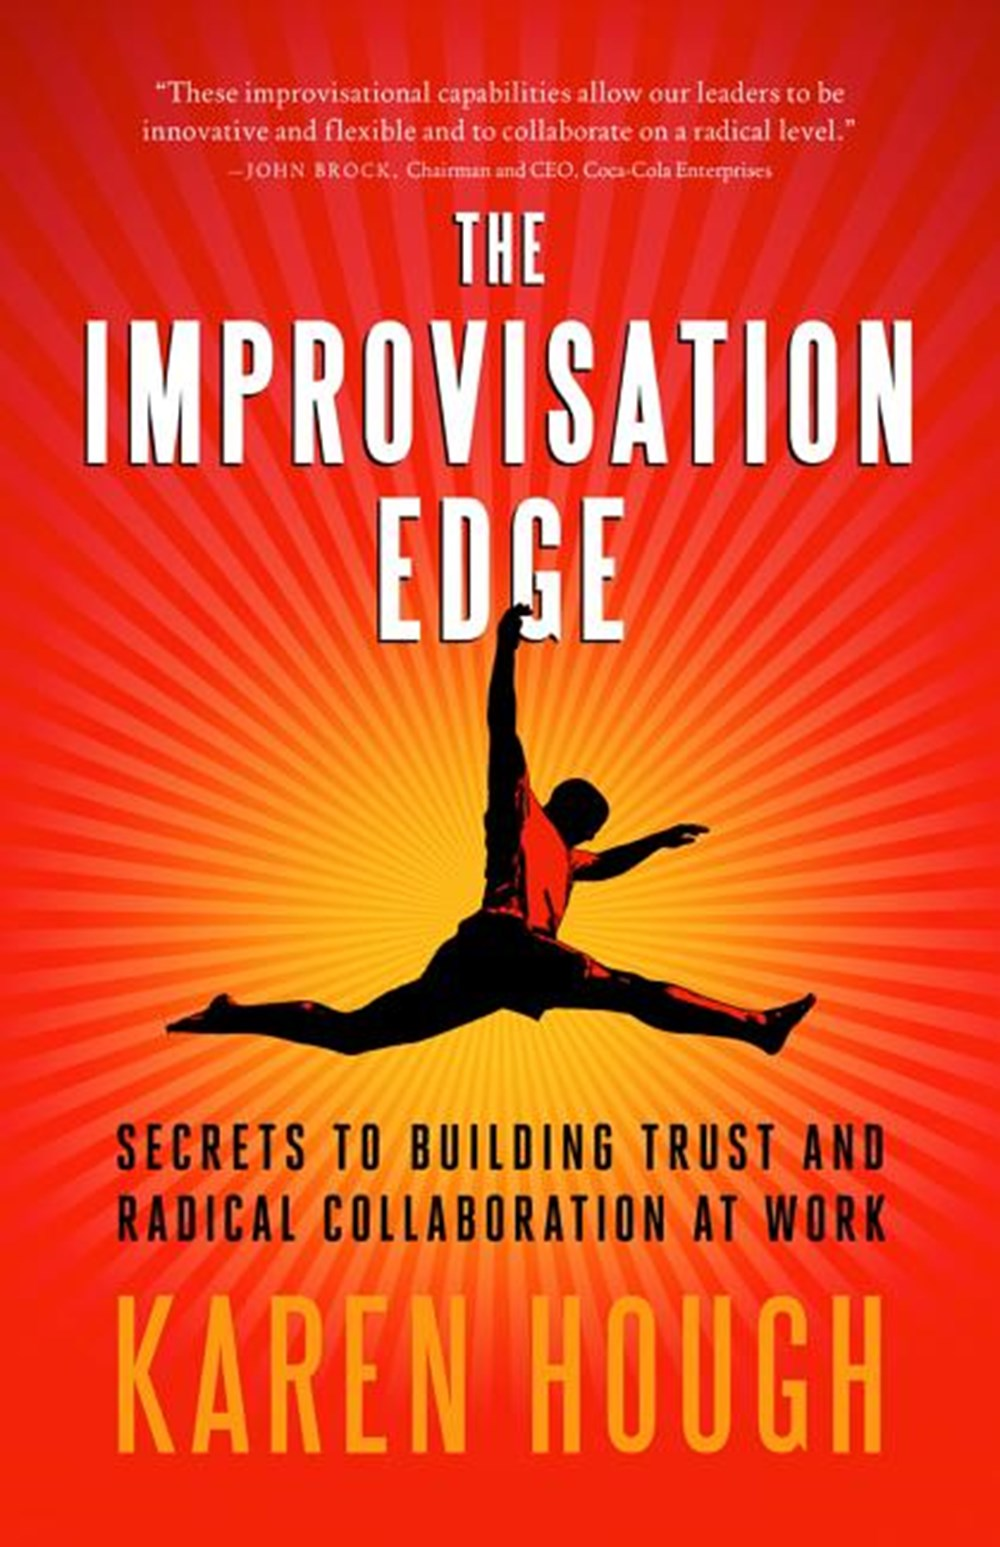 Improvisation Edge Secrets to Building Trust and Radical Collaboration at Work